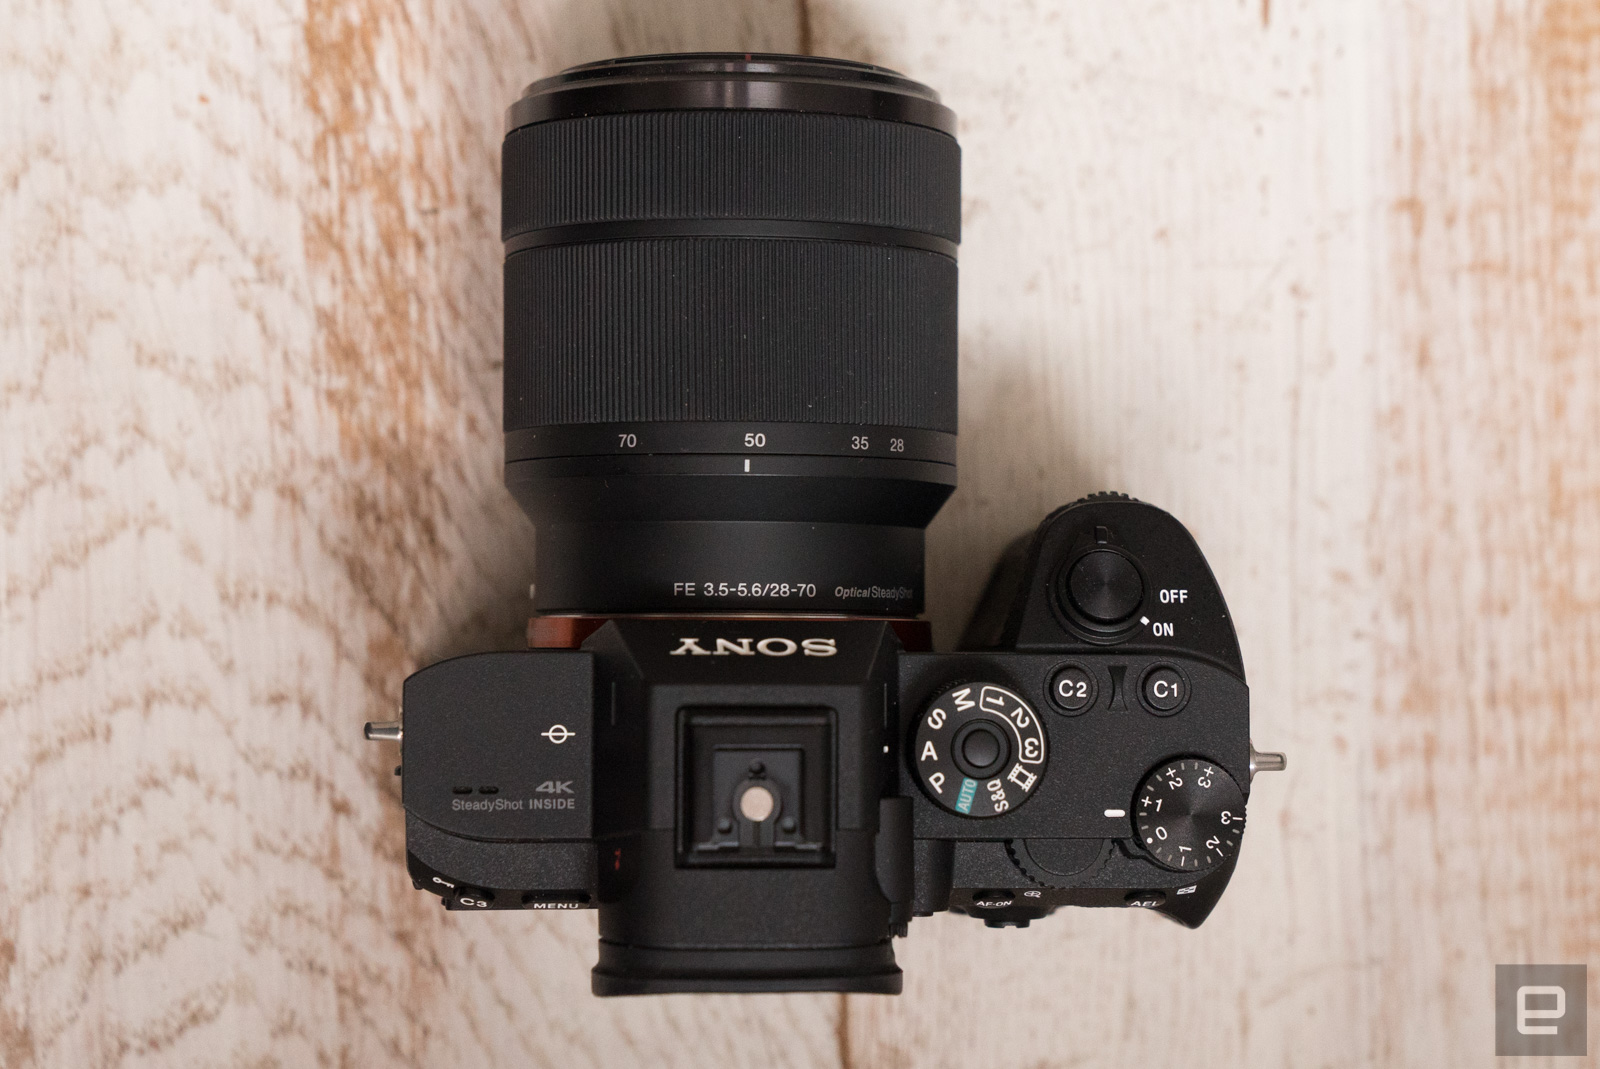 Sony's A7R III mirrorless can take anything you throw at it